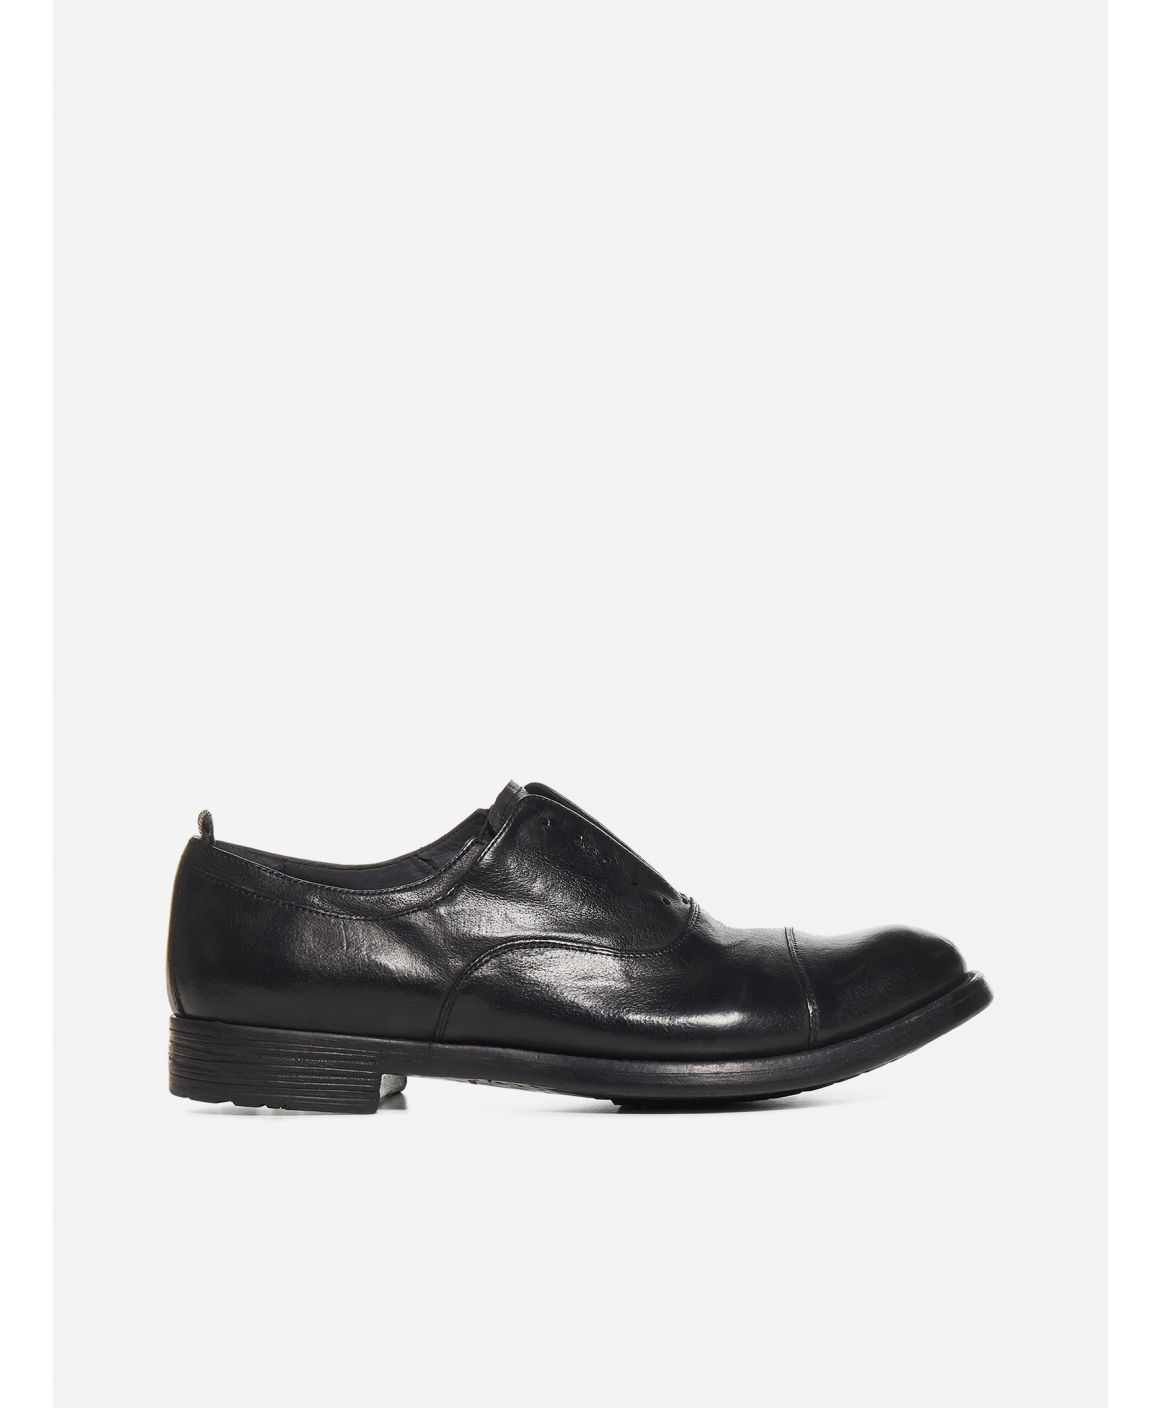 Hive 4 leather derby shoes